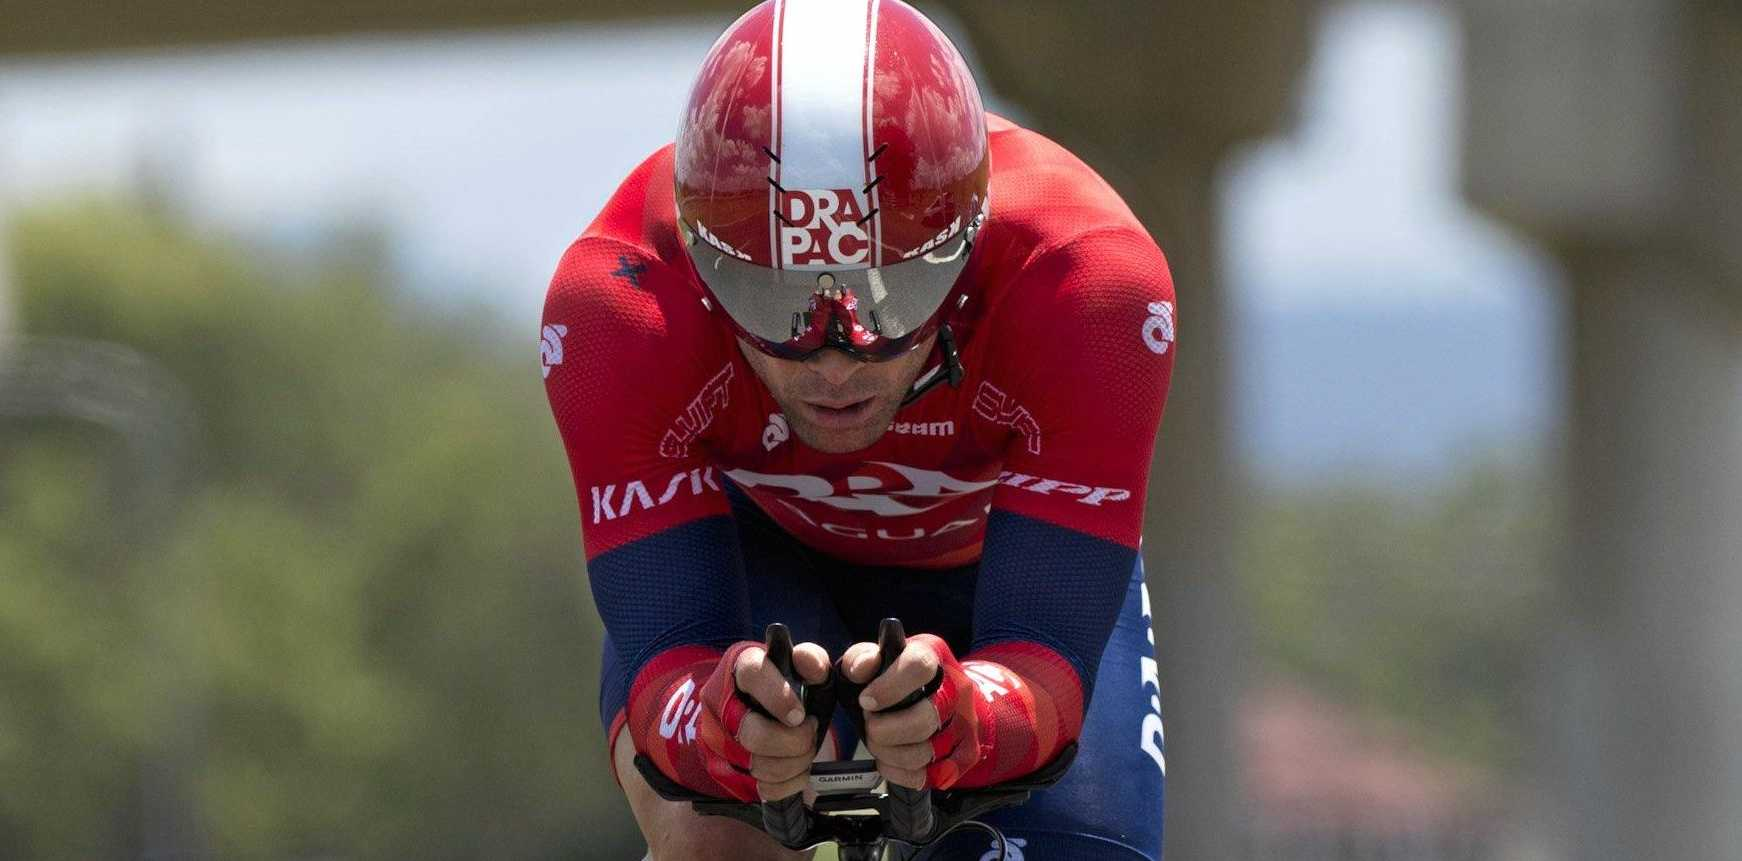 Malcolm Rudolph competes in the Oceania Road Championships Helidon time trial, Friday, February 13, 2015. Photo Kevin Farmer / The Chronicle